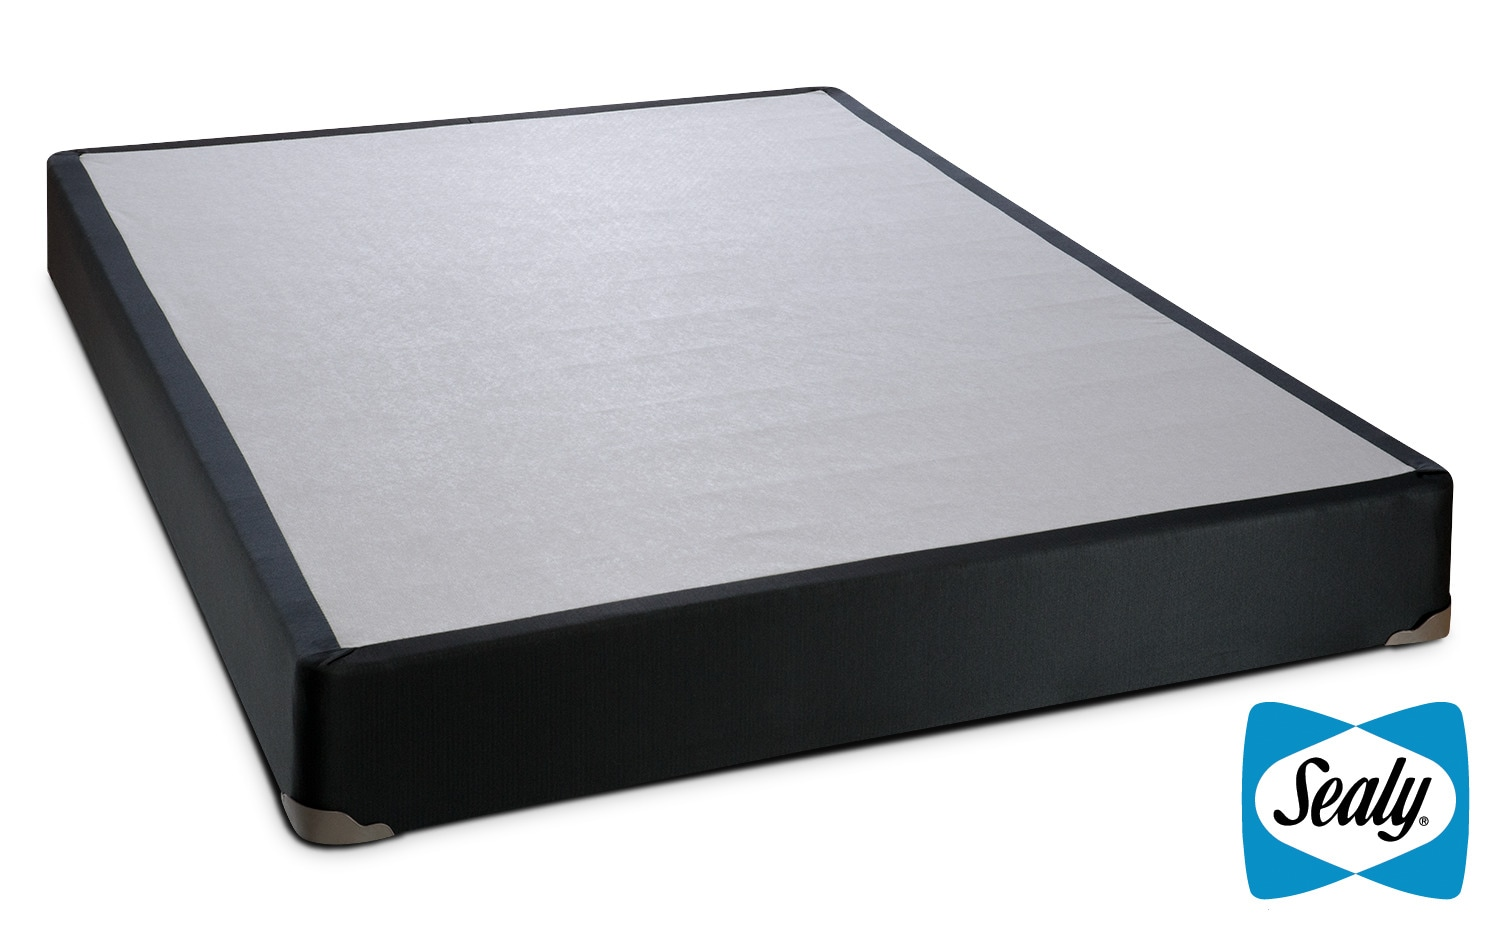 Mattresses and Bedding - Sealy Charcoal Luxe Queen Boxspring